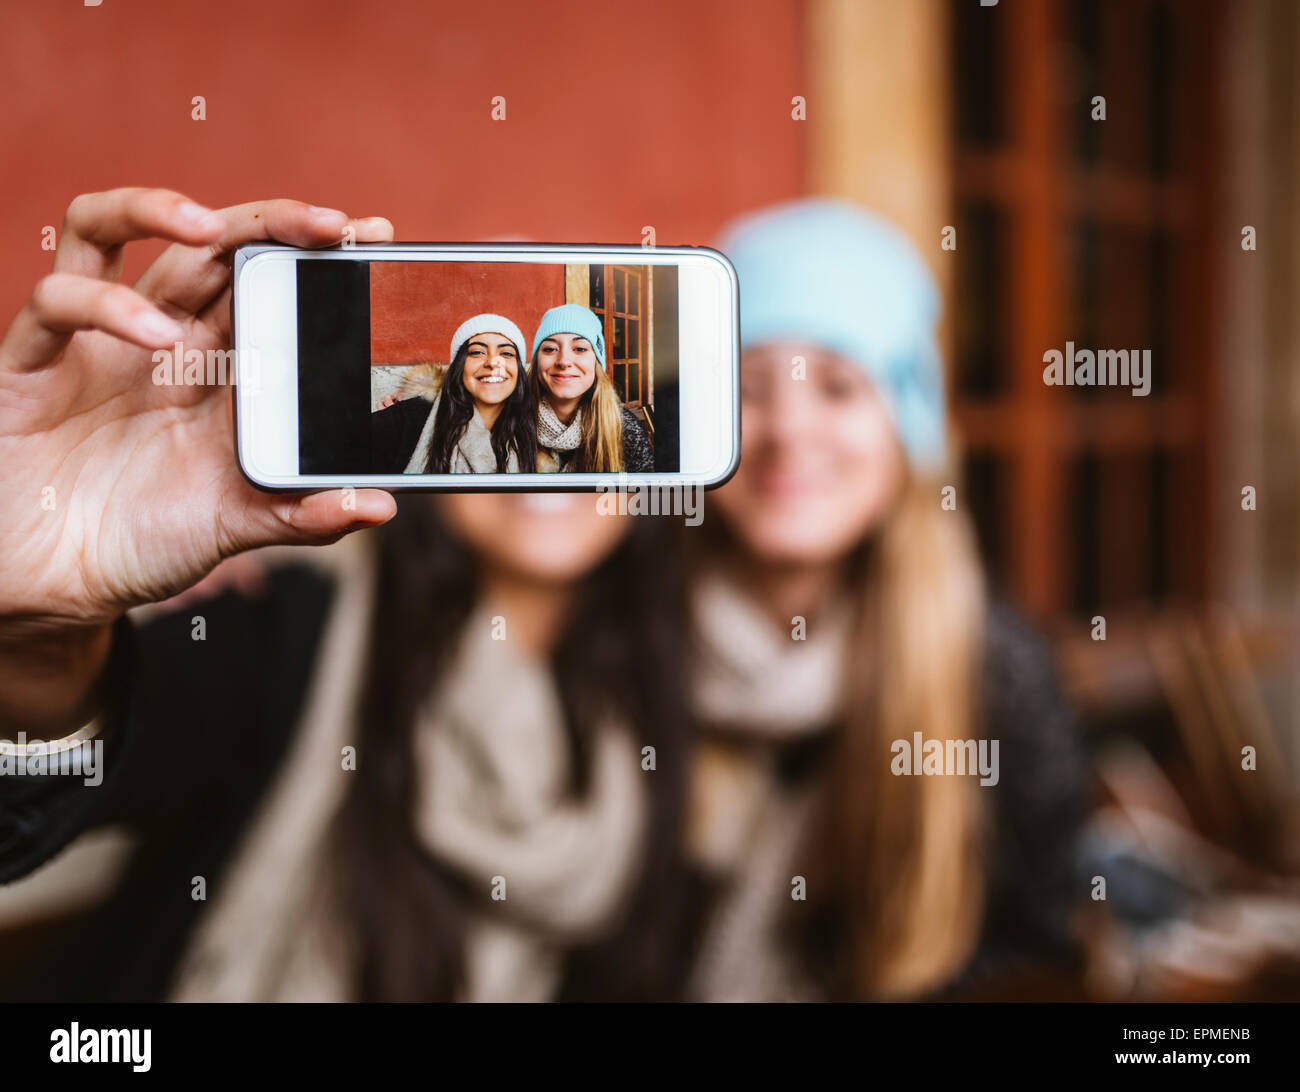 Selfie of two female friends on display of smartphone - Stock Image